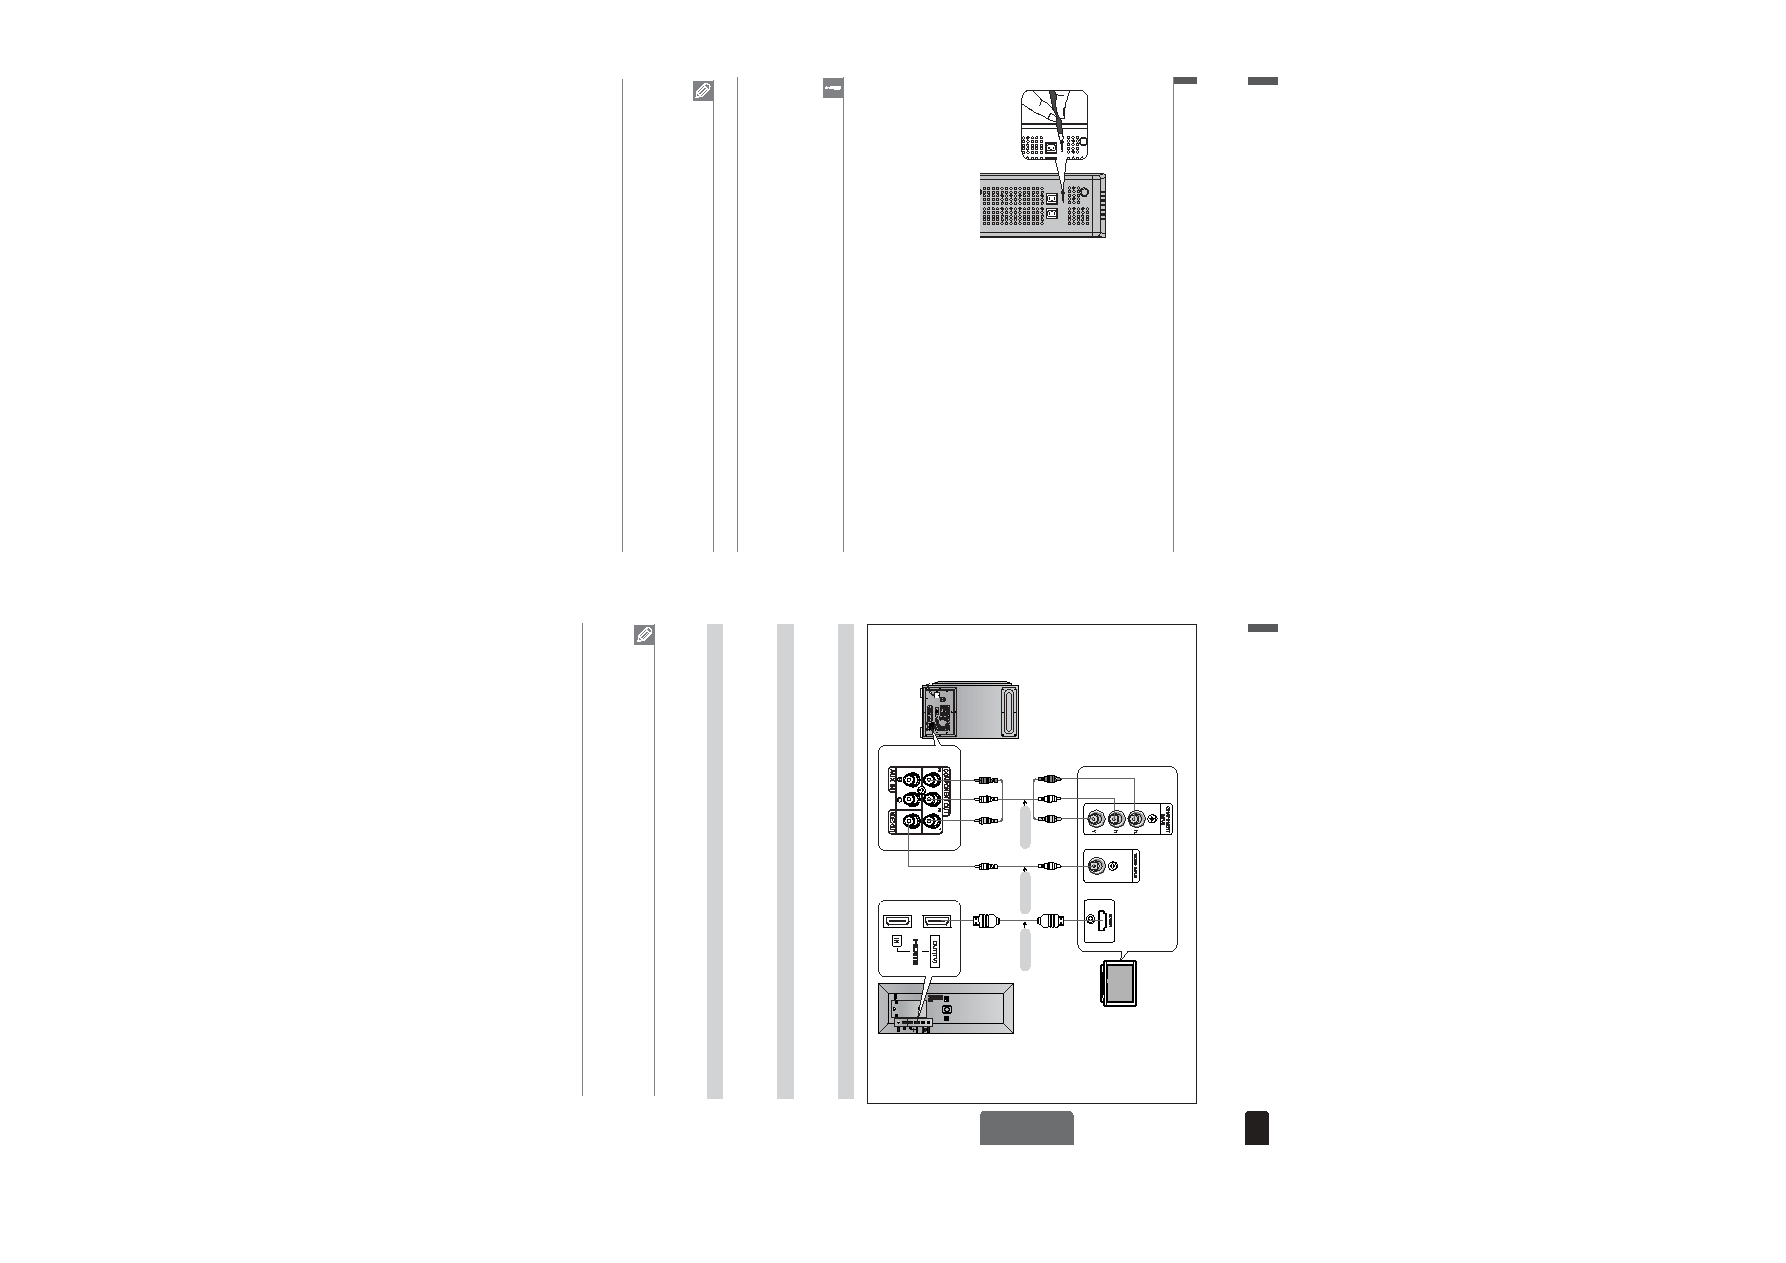 Samsung HT-TXQ120 User Manual (ver.1.0). Page 10, as of